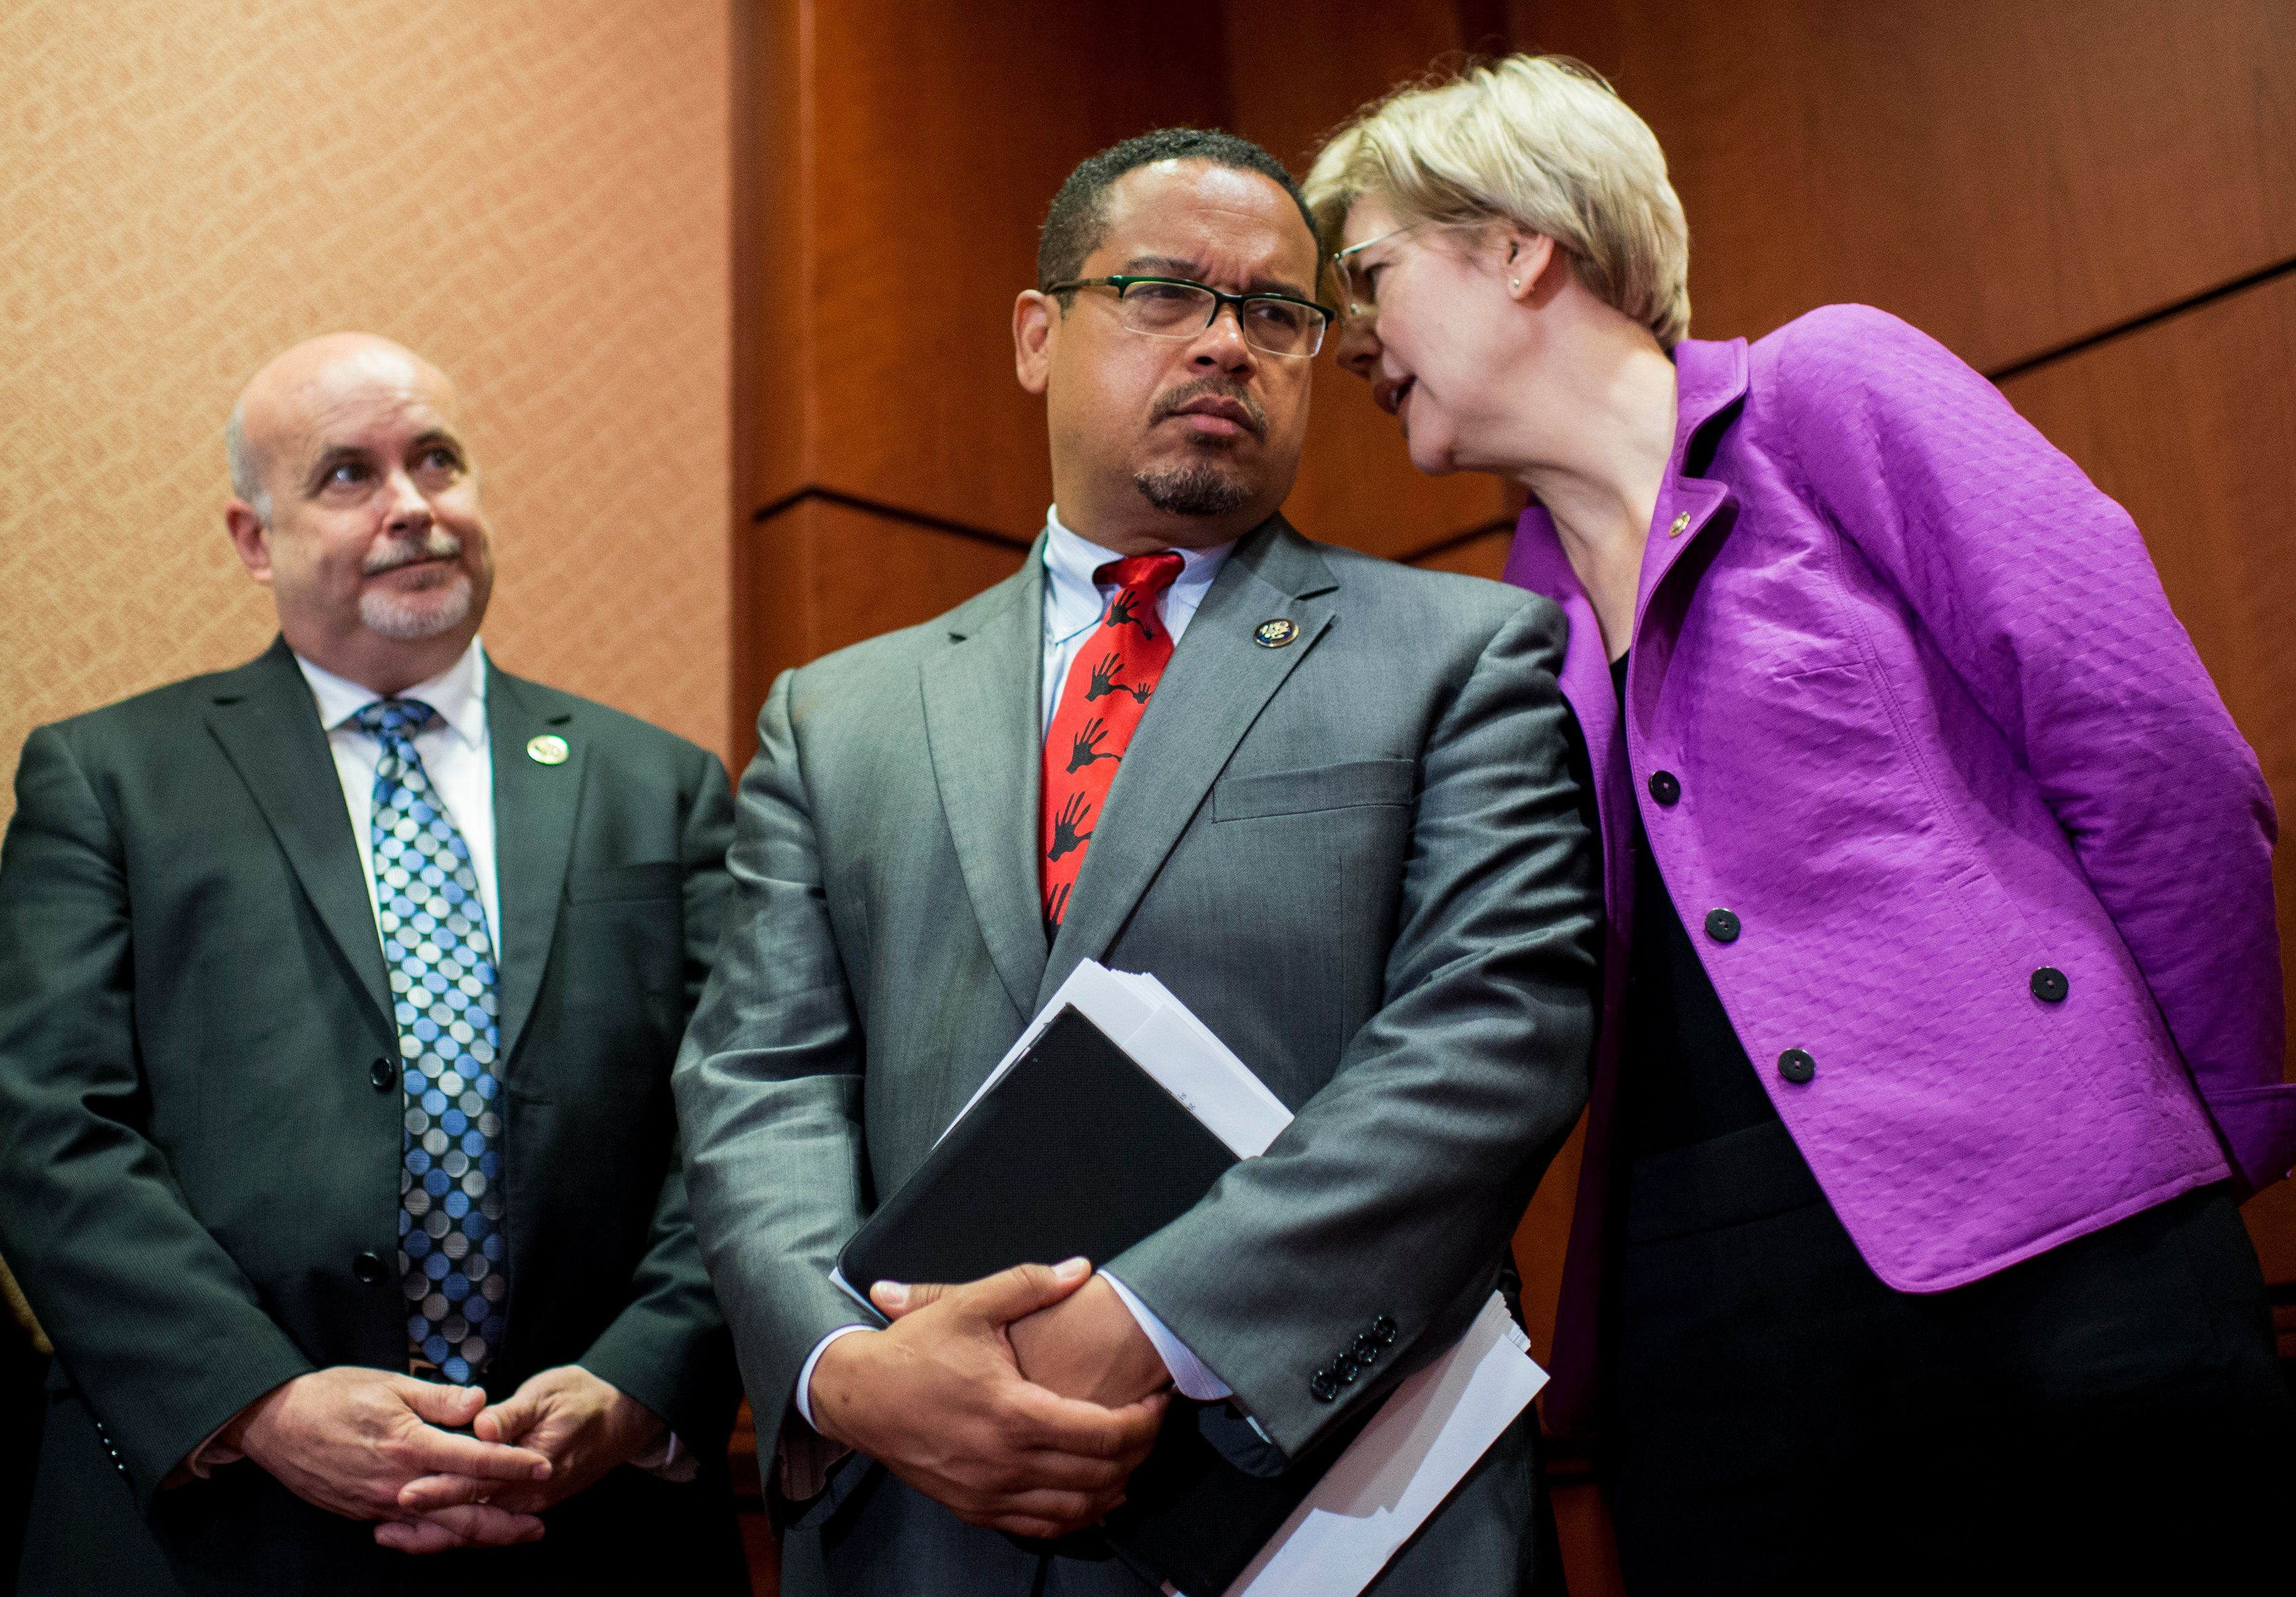 Sen. Elizabeth Warren praised Rep. Keith Ellison's efforts to hold Wall Street responsible.